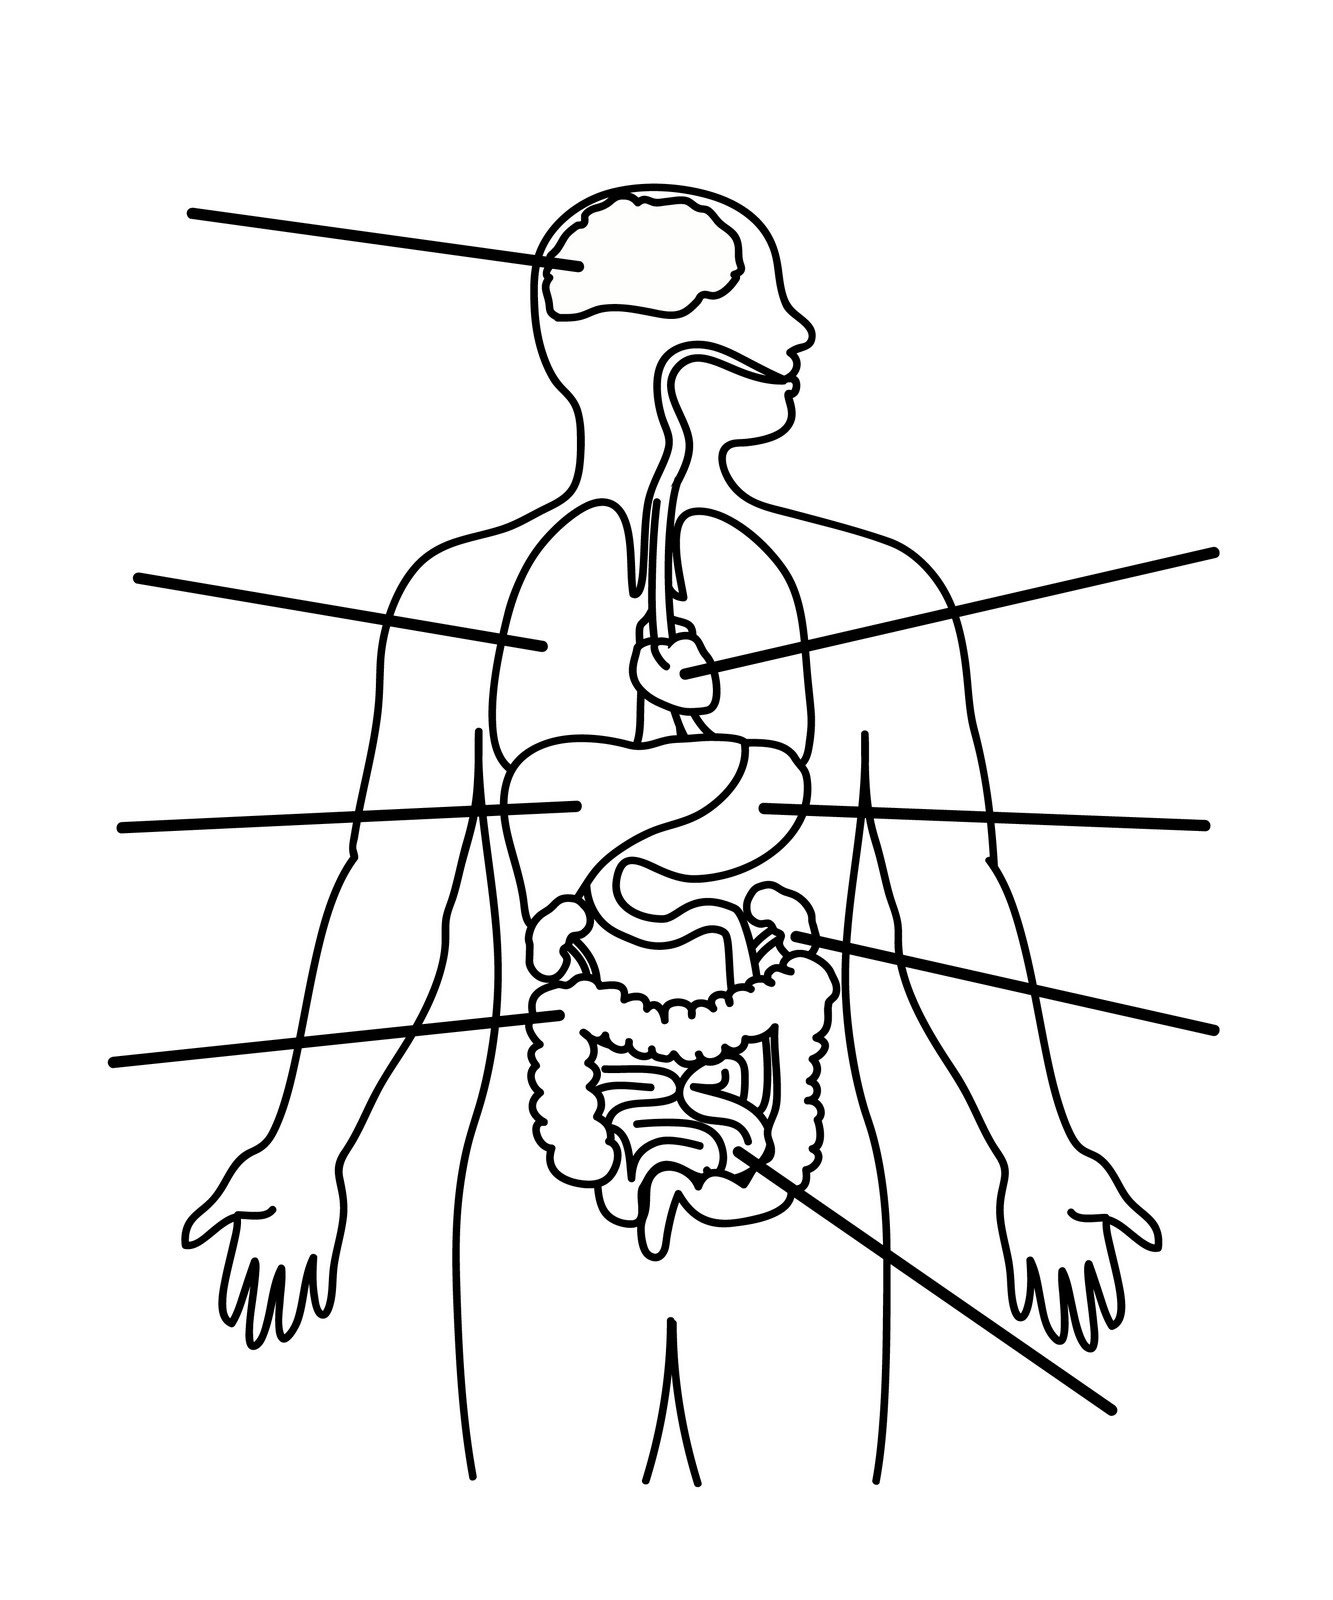 hight resolution of diagram of body drawing wiring diagram forward diagram of body drawing